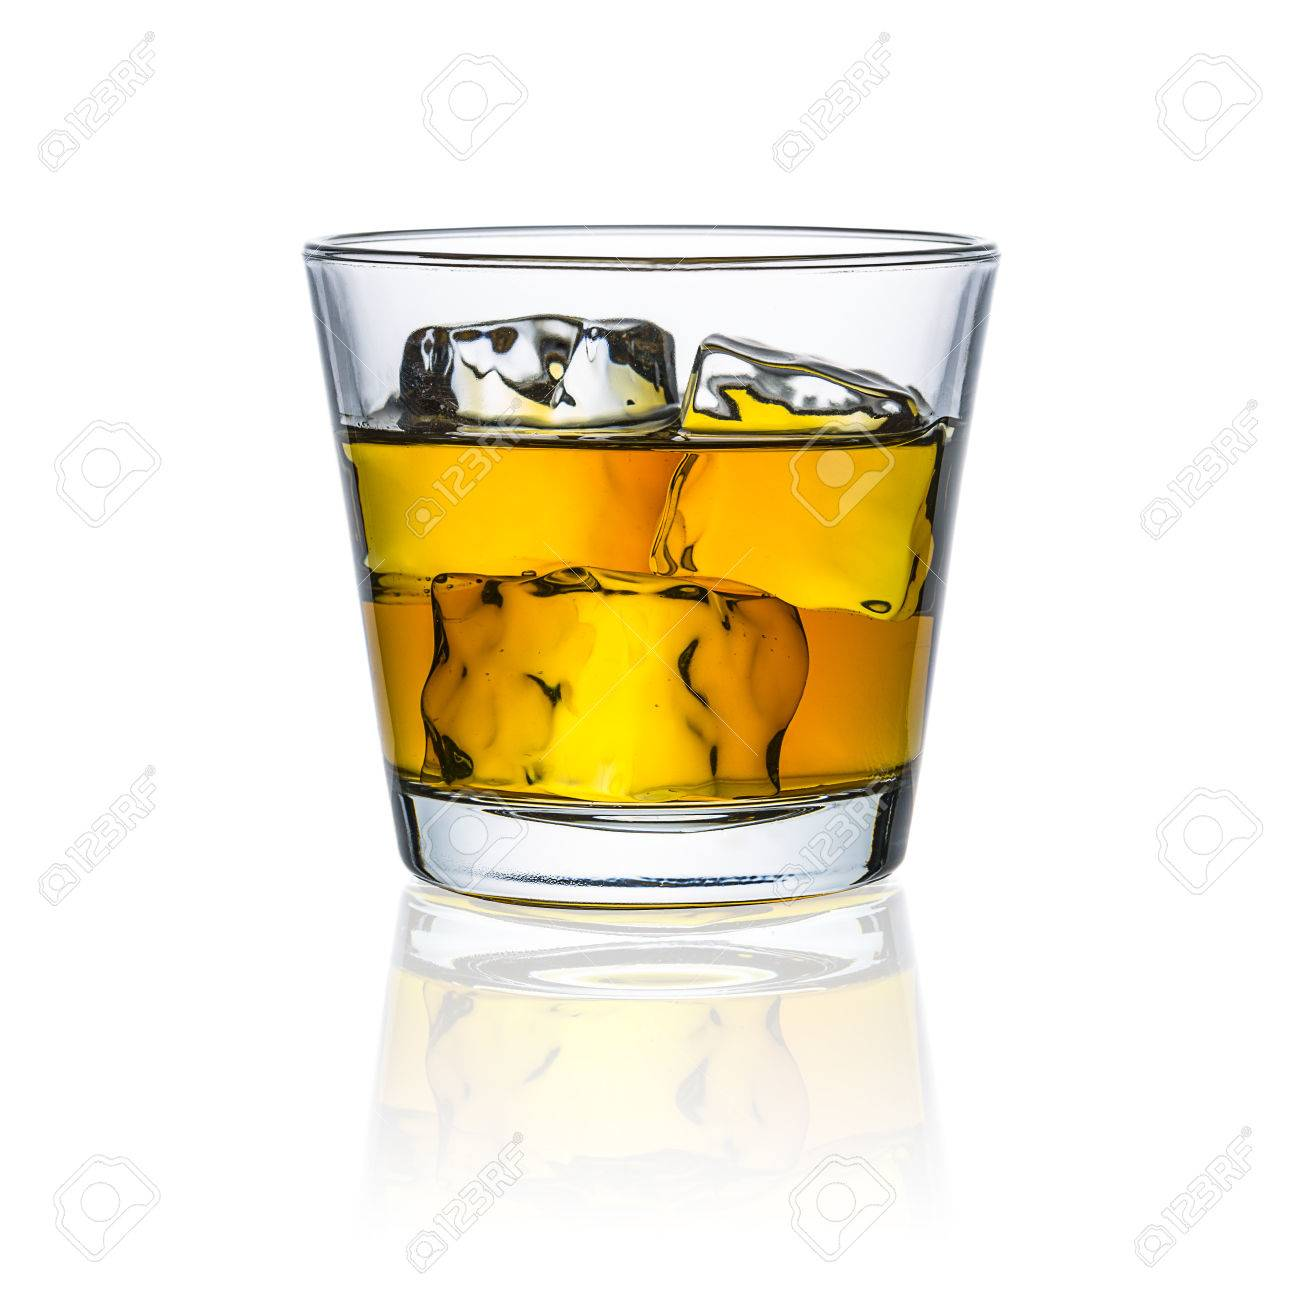 Image result for images of bourbon on the rocks